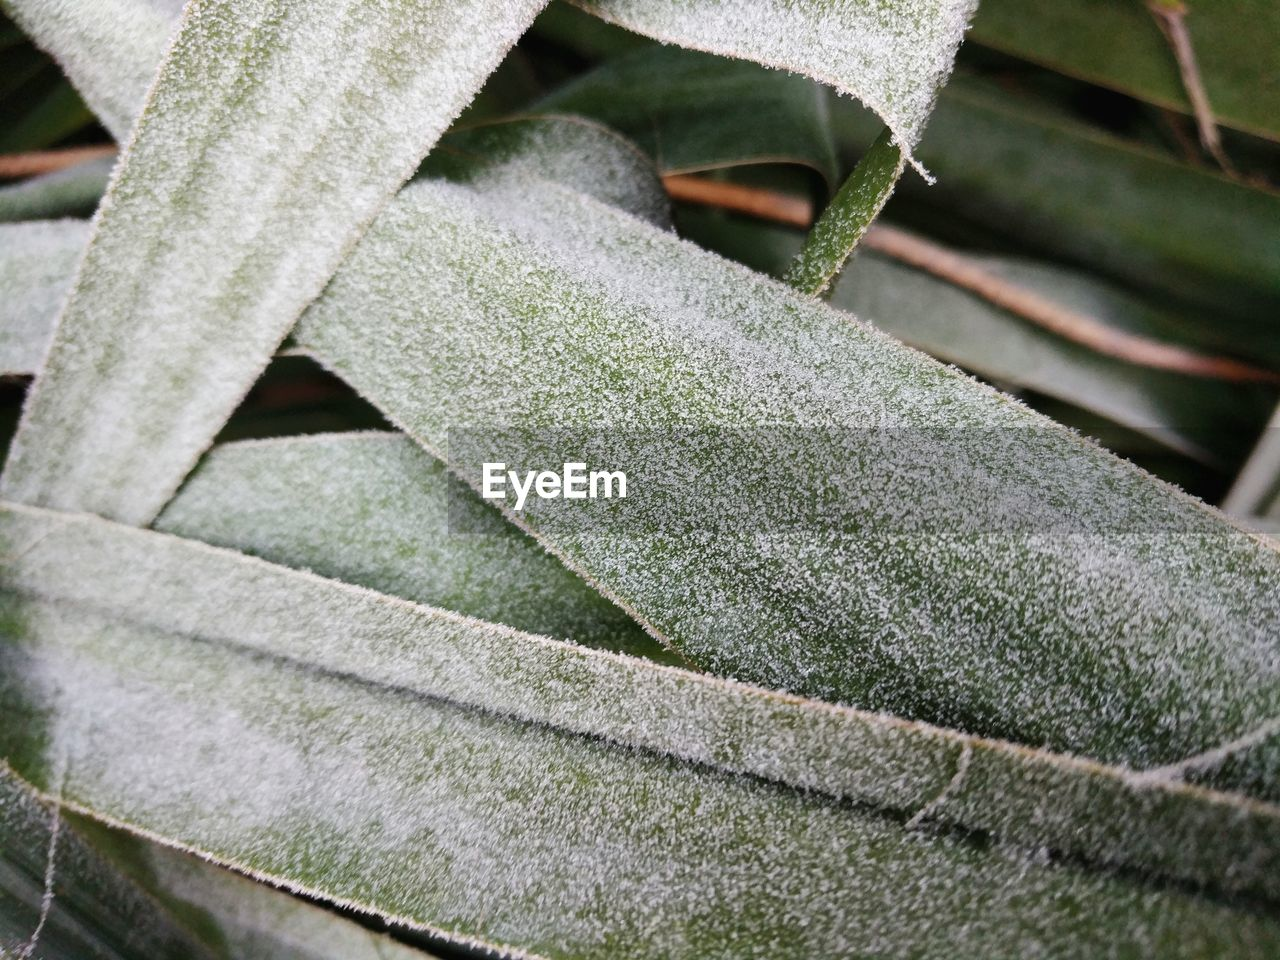 plant, close-up, leaf, plant part, growth, no people, green color, nature, day, focus on foreground, outdoors, beauty in nature, selective focus, tranquility, land, pattern, wood - material, vulnerability, succulent plant, winter